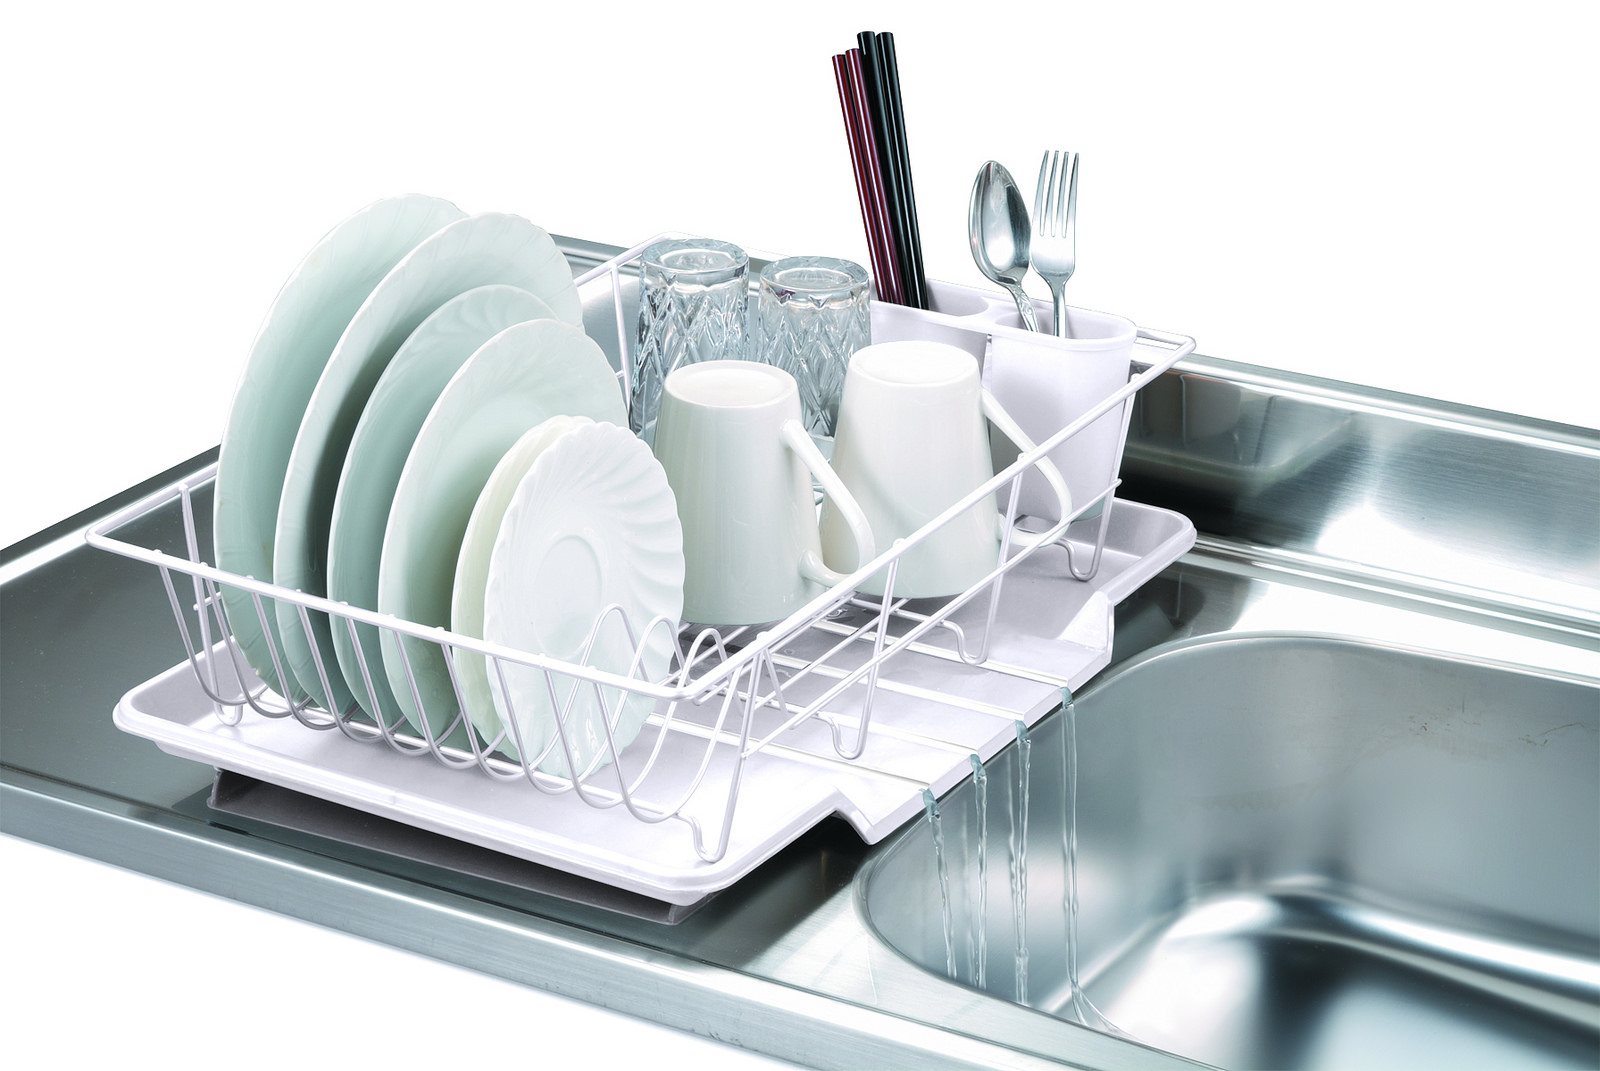 Home Basics 3-Piece Kitchen Sink Dish Drainer Set - Various Colors to Choose From  sc 1 st  Walmart & Dish Drainers